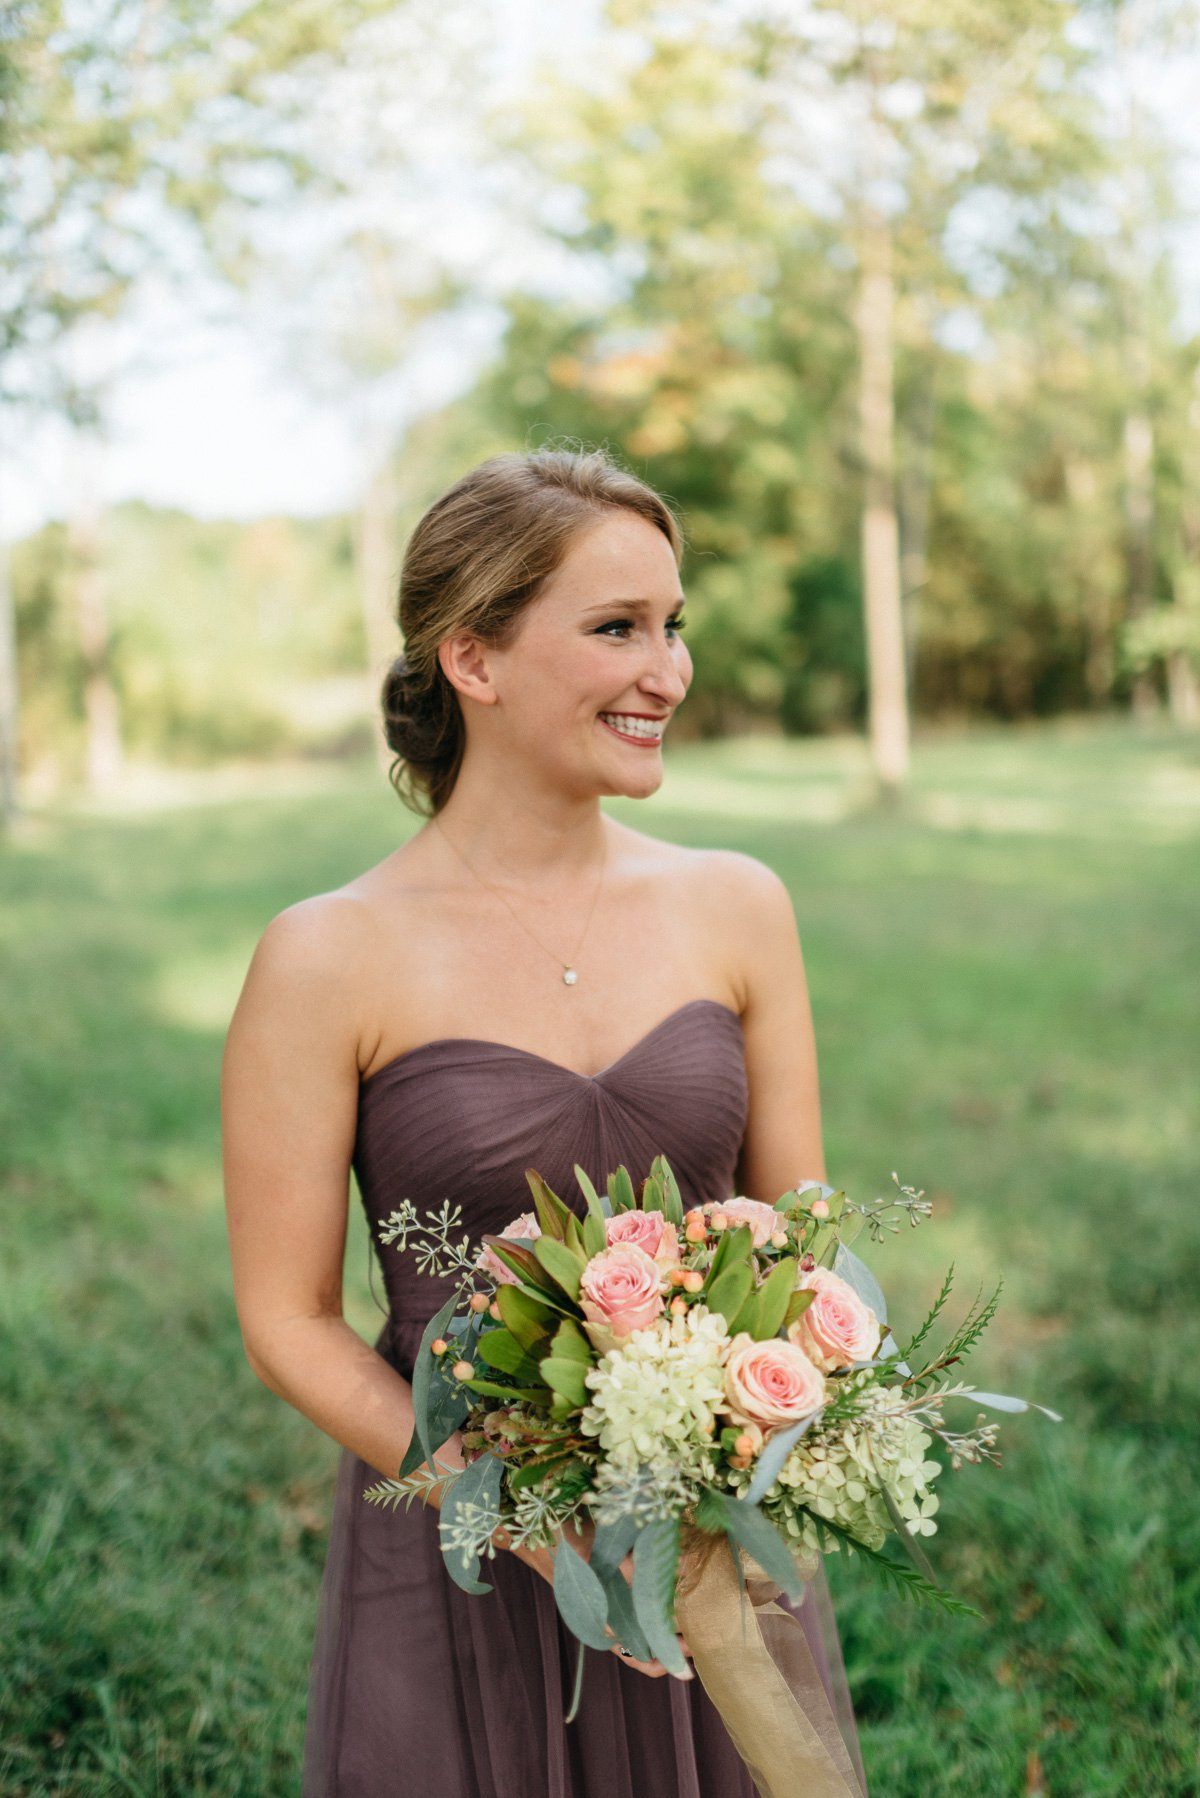 bridal wedding day portraits at southwind venue, mississippi wedding photography